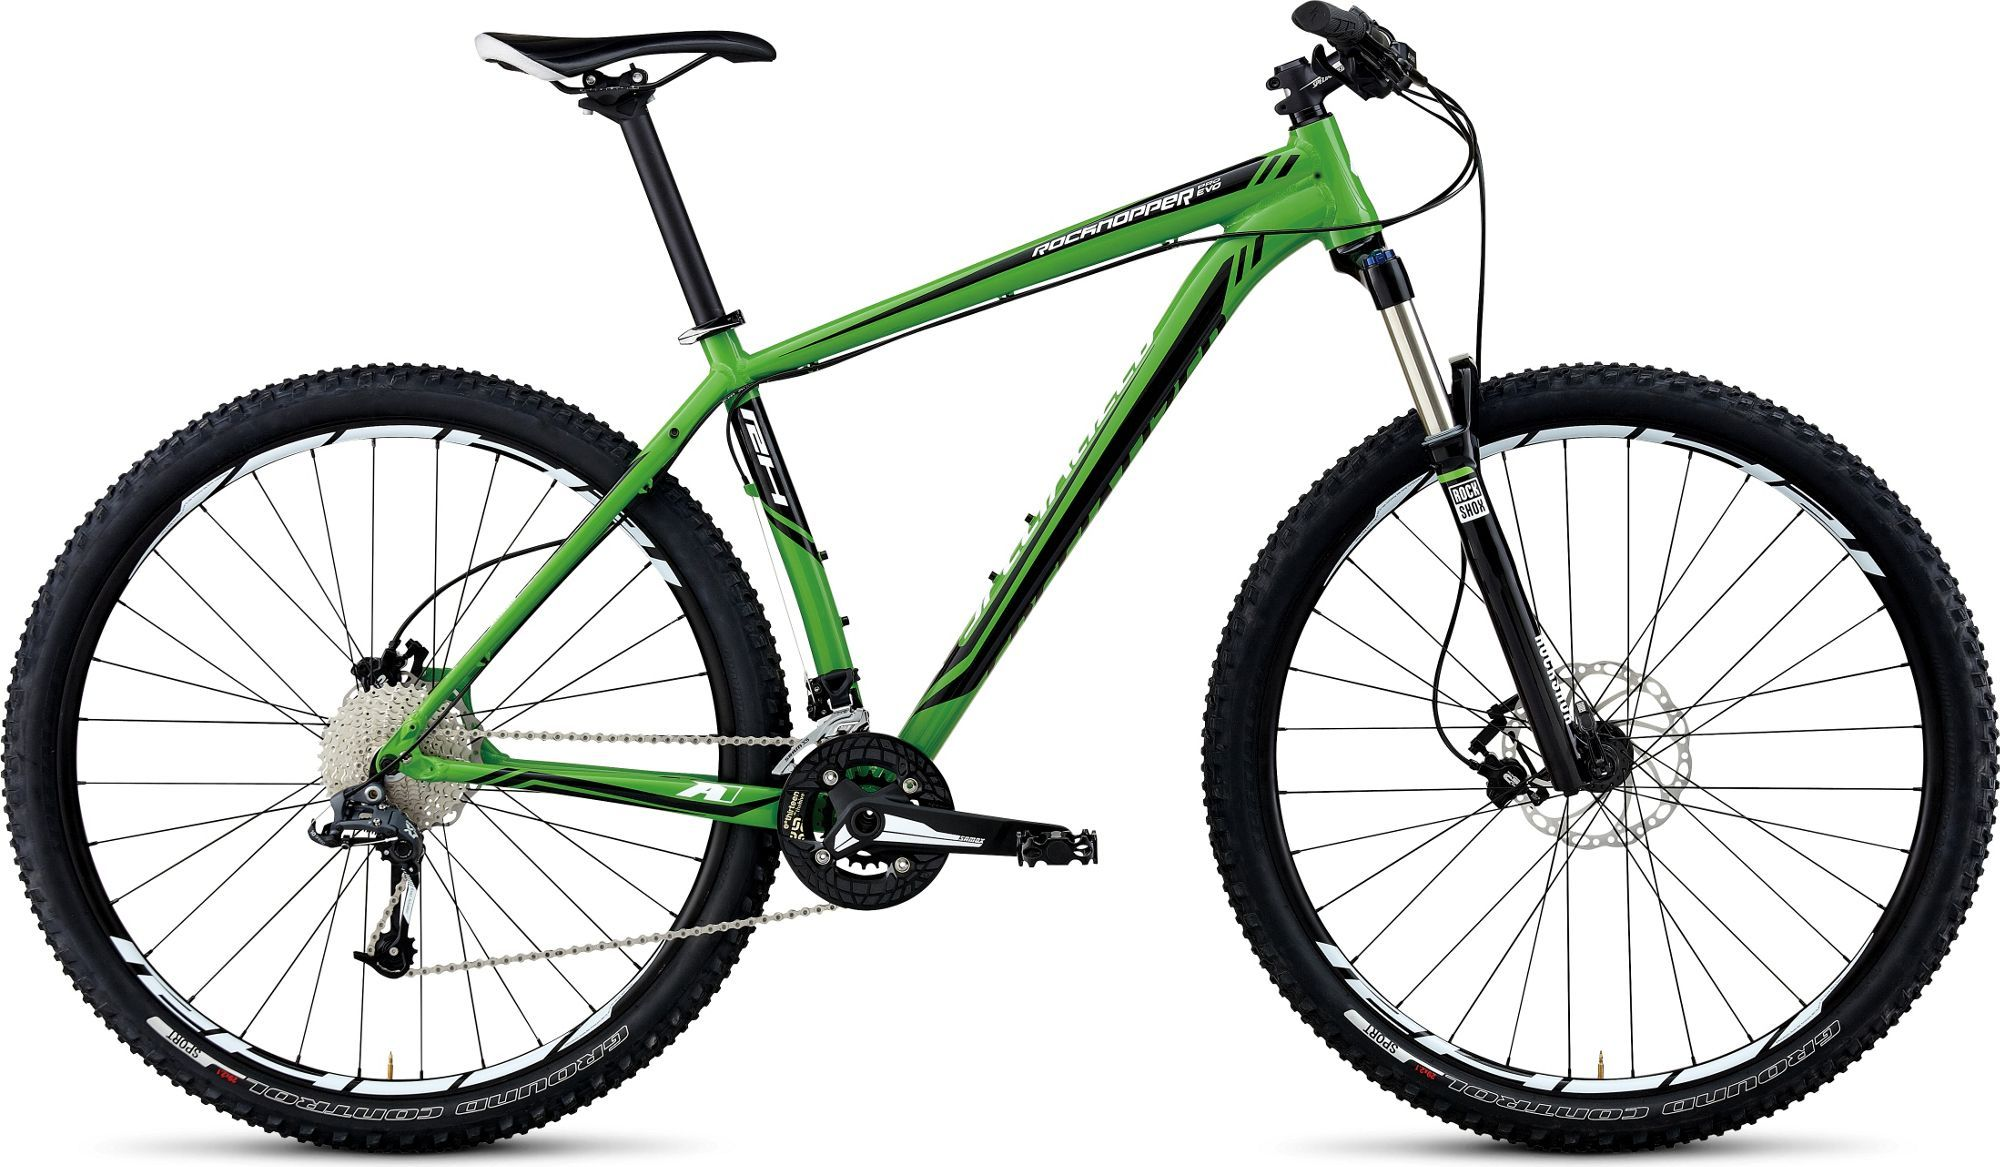 Specialized Rockhopper Pro EVO 650b review - MBR